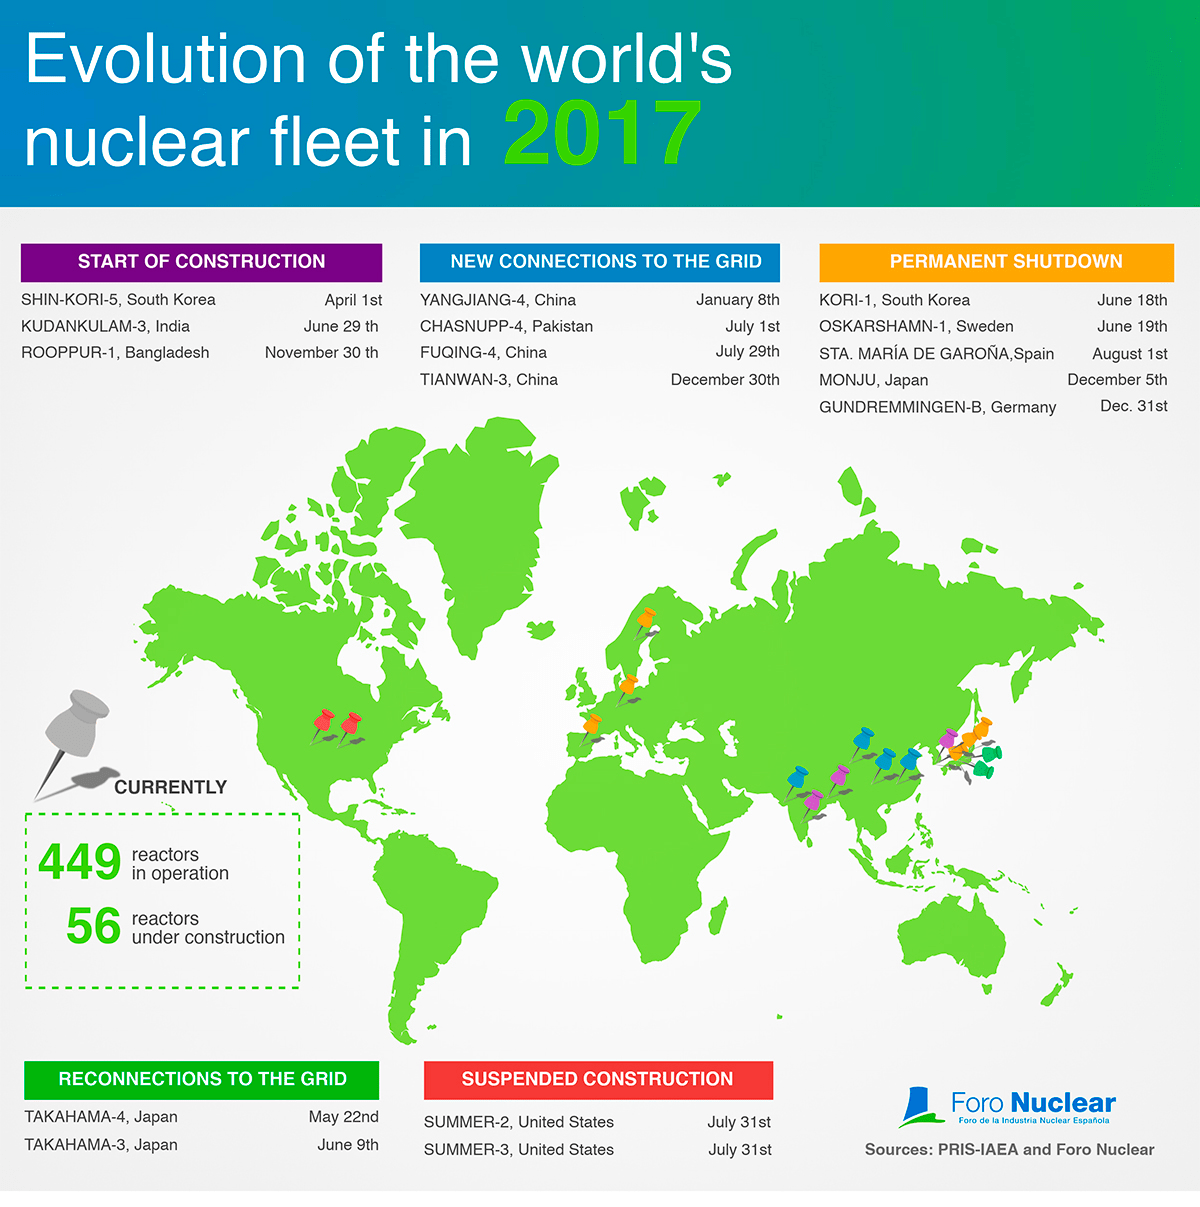 Evolution of the world's nuclear fleet in 2017